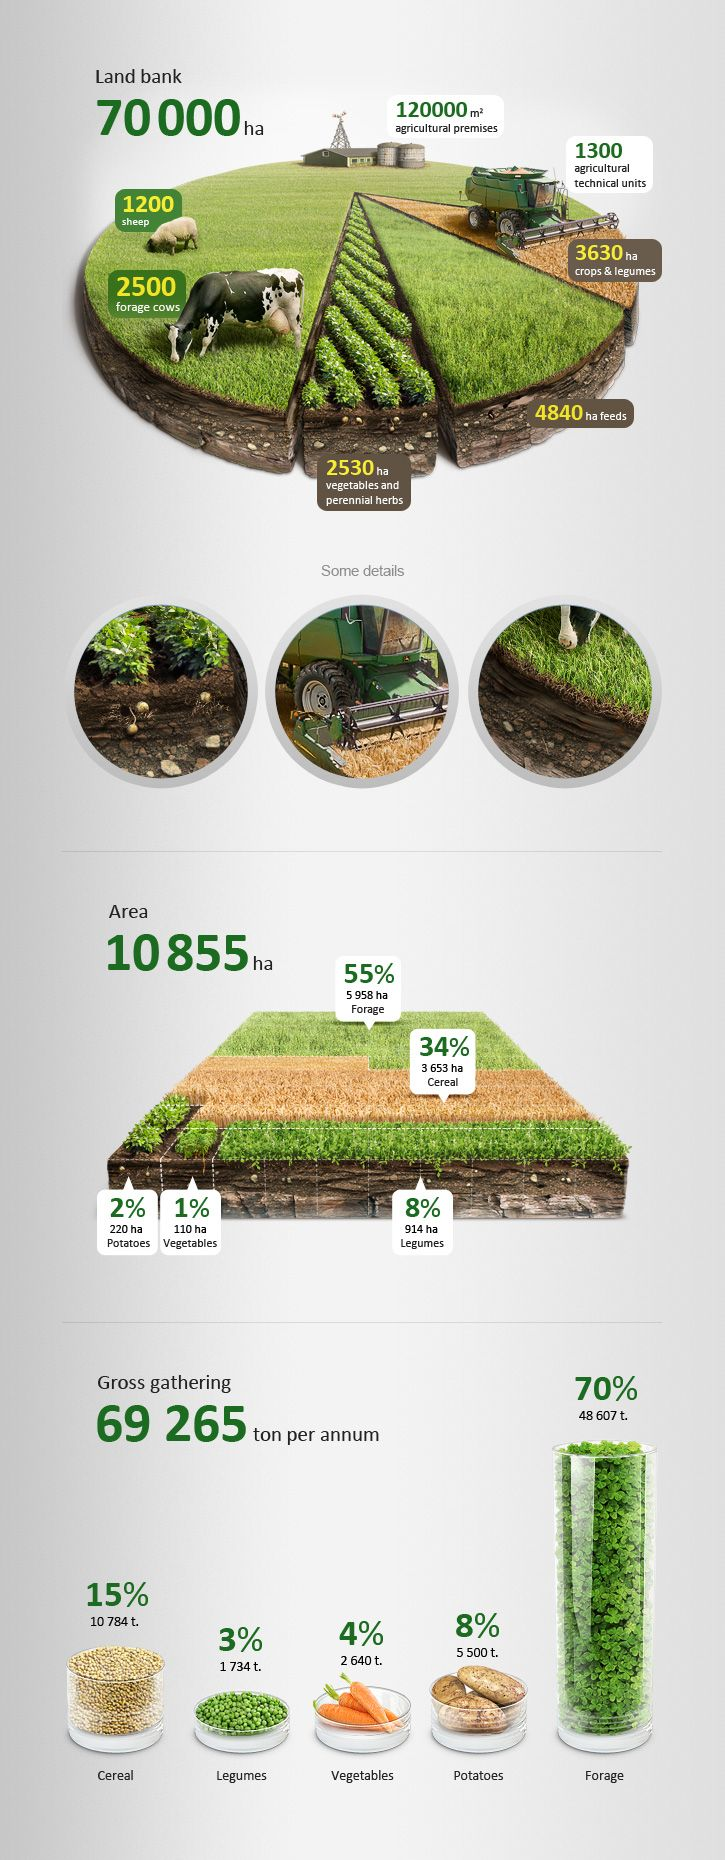 The project was done for a web site of an agricultural holding company – Agroreserv. I decided to present a complicated data about client's assets